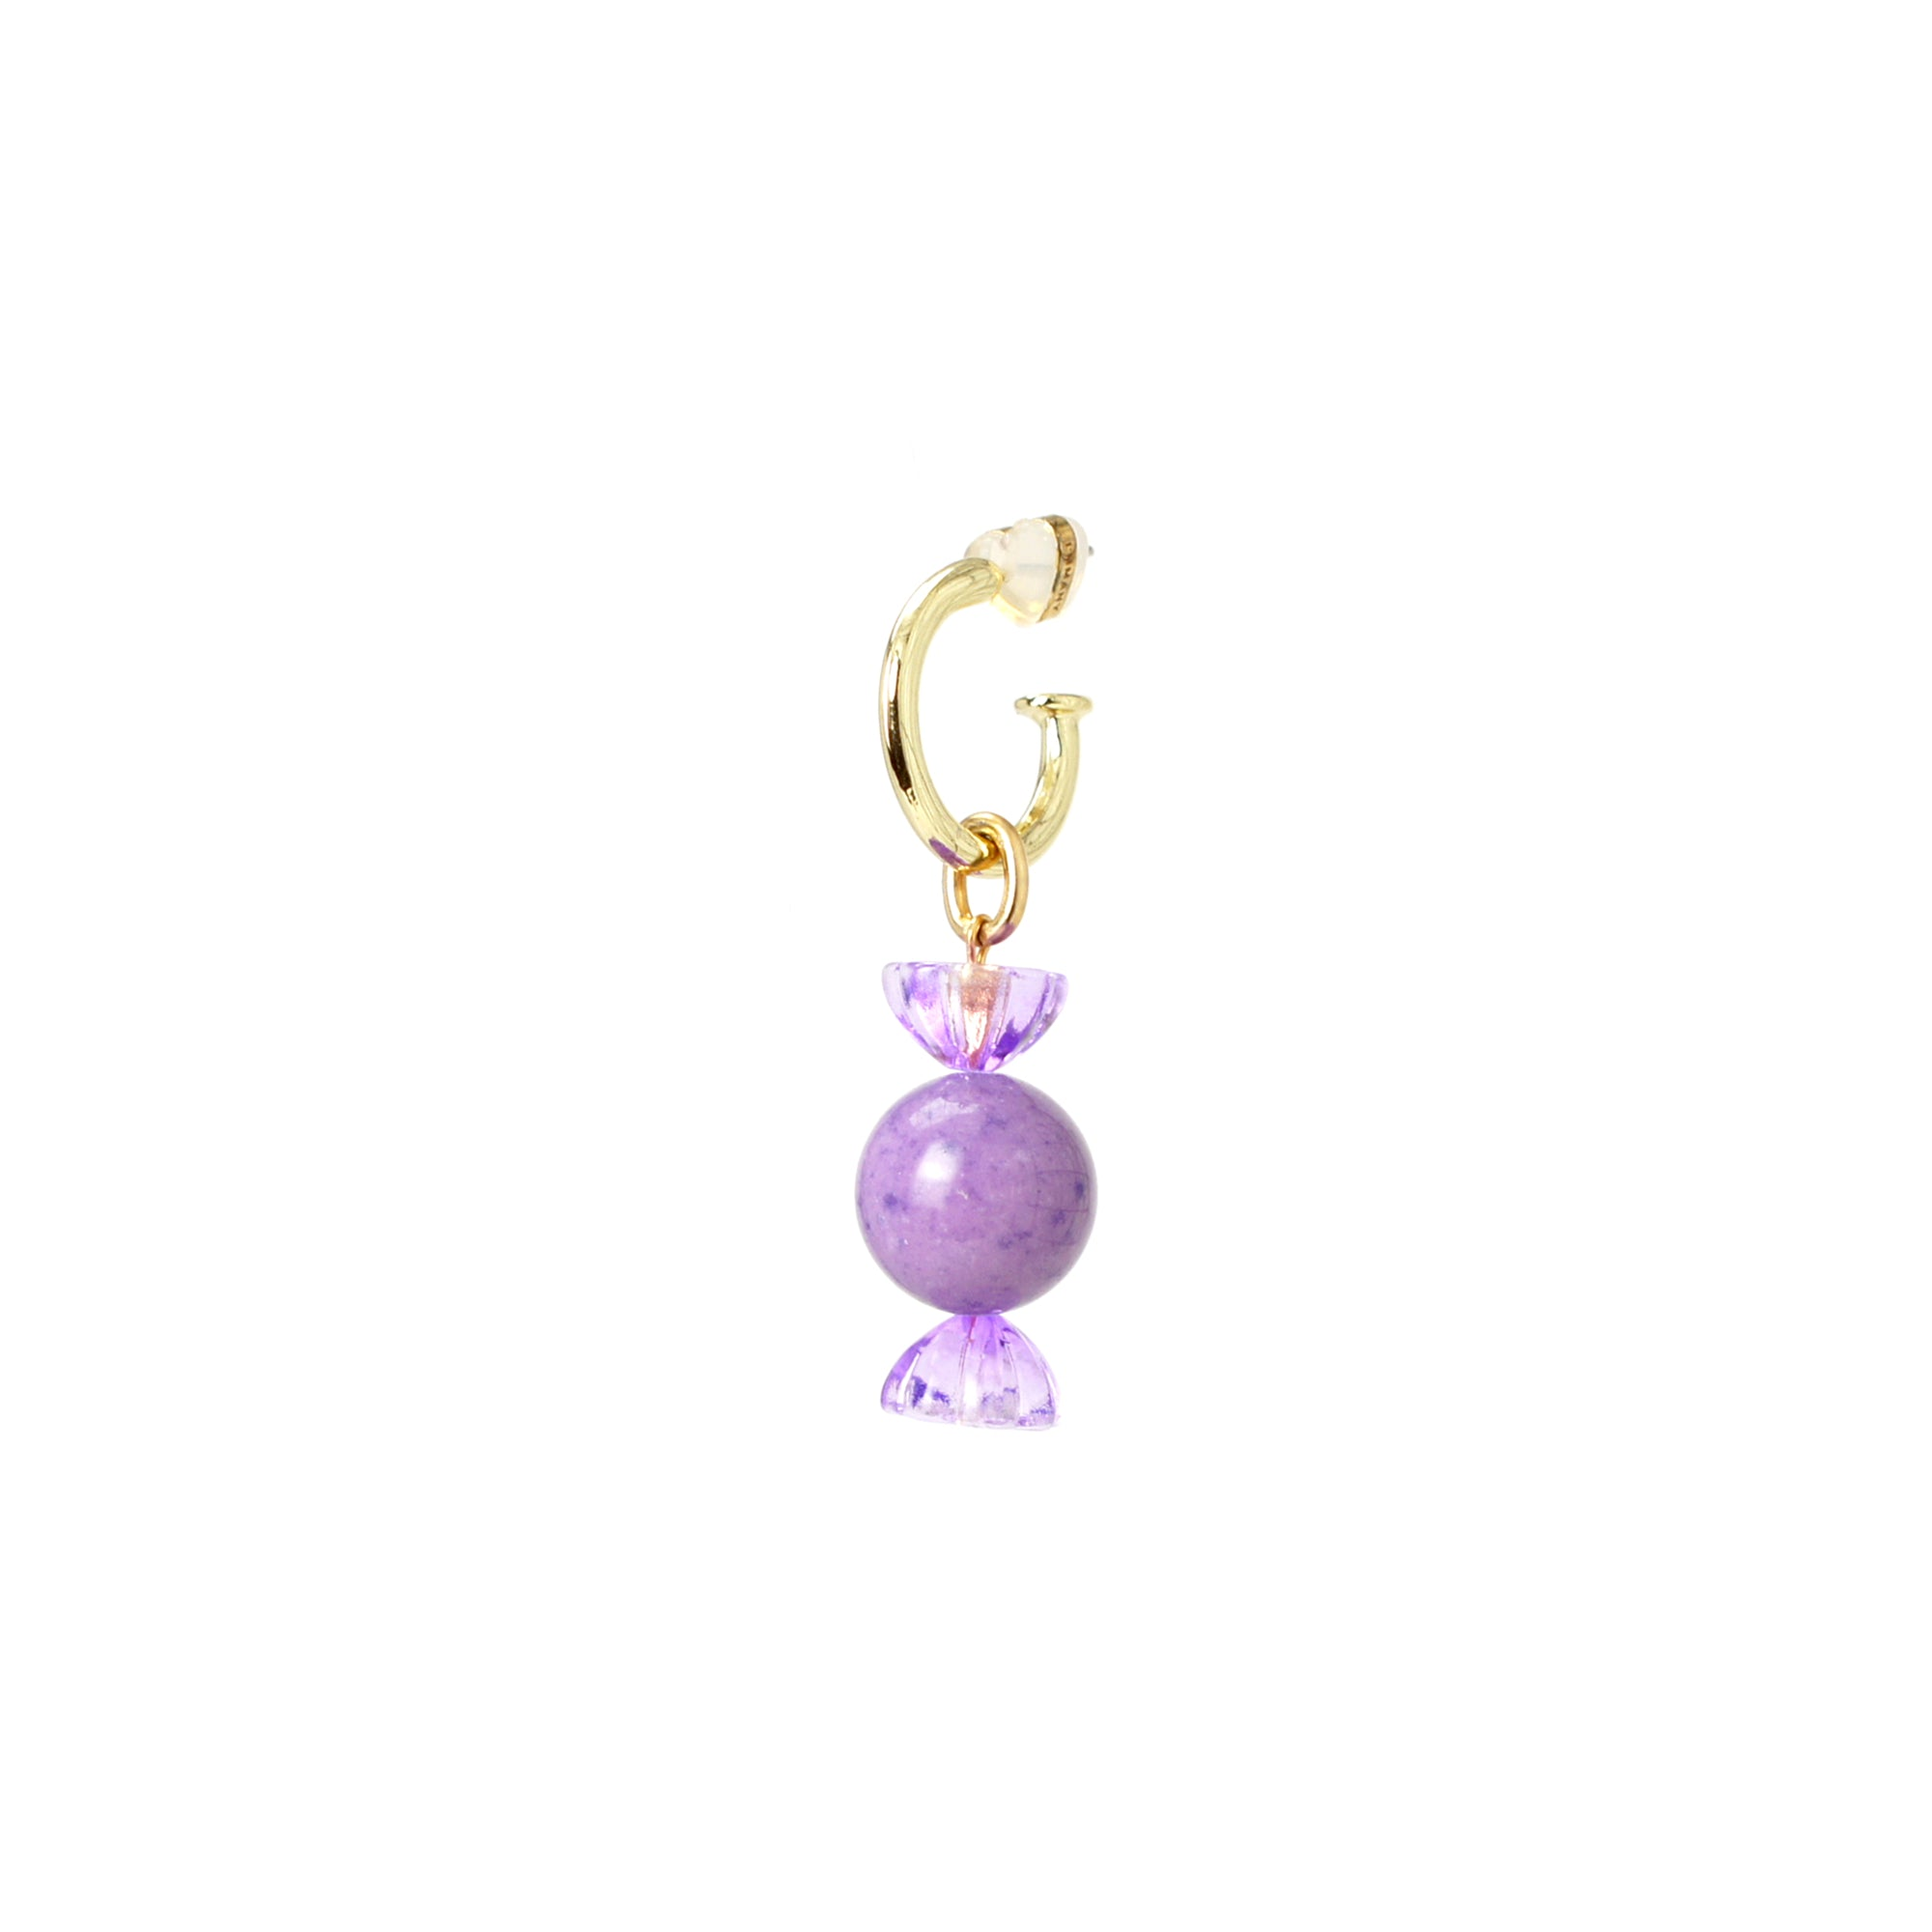 Sugar Sweet Gemstone Candy Drop Half Hoop Earring